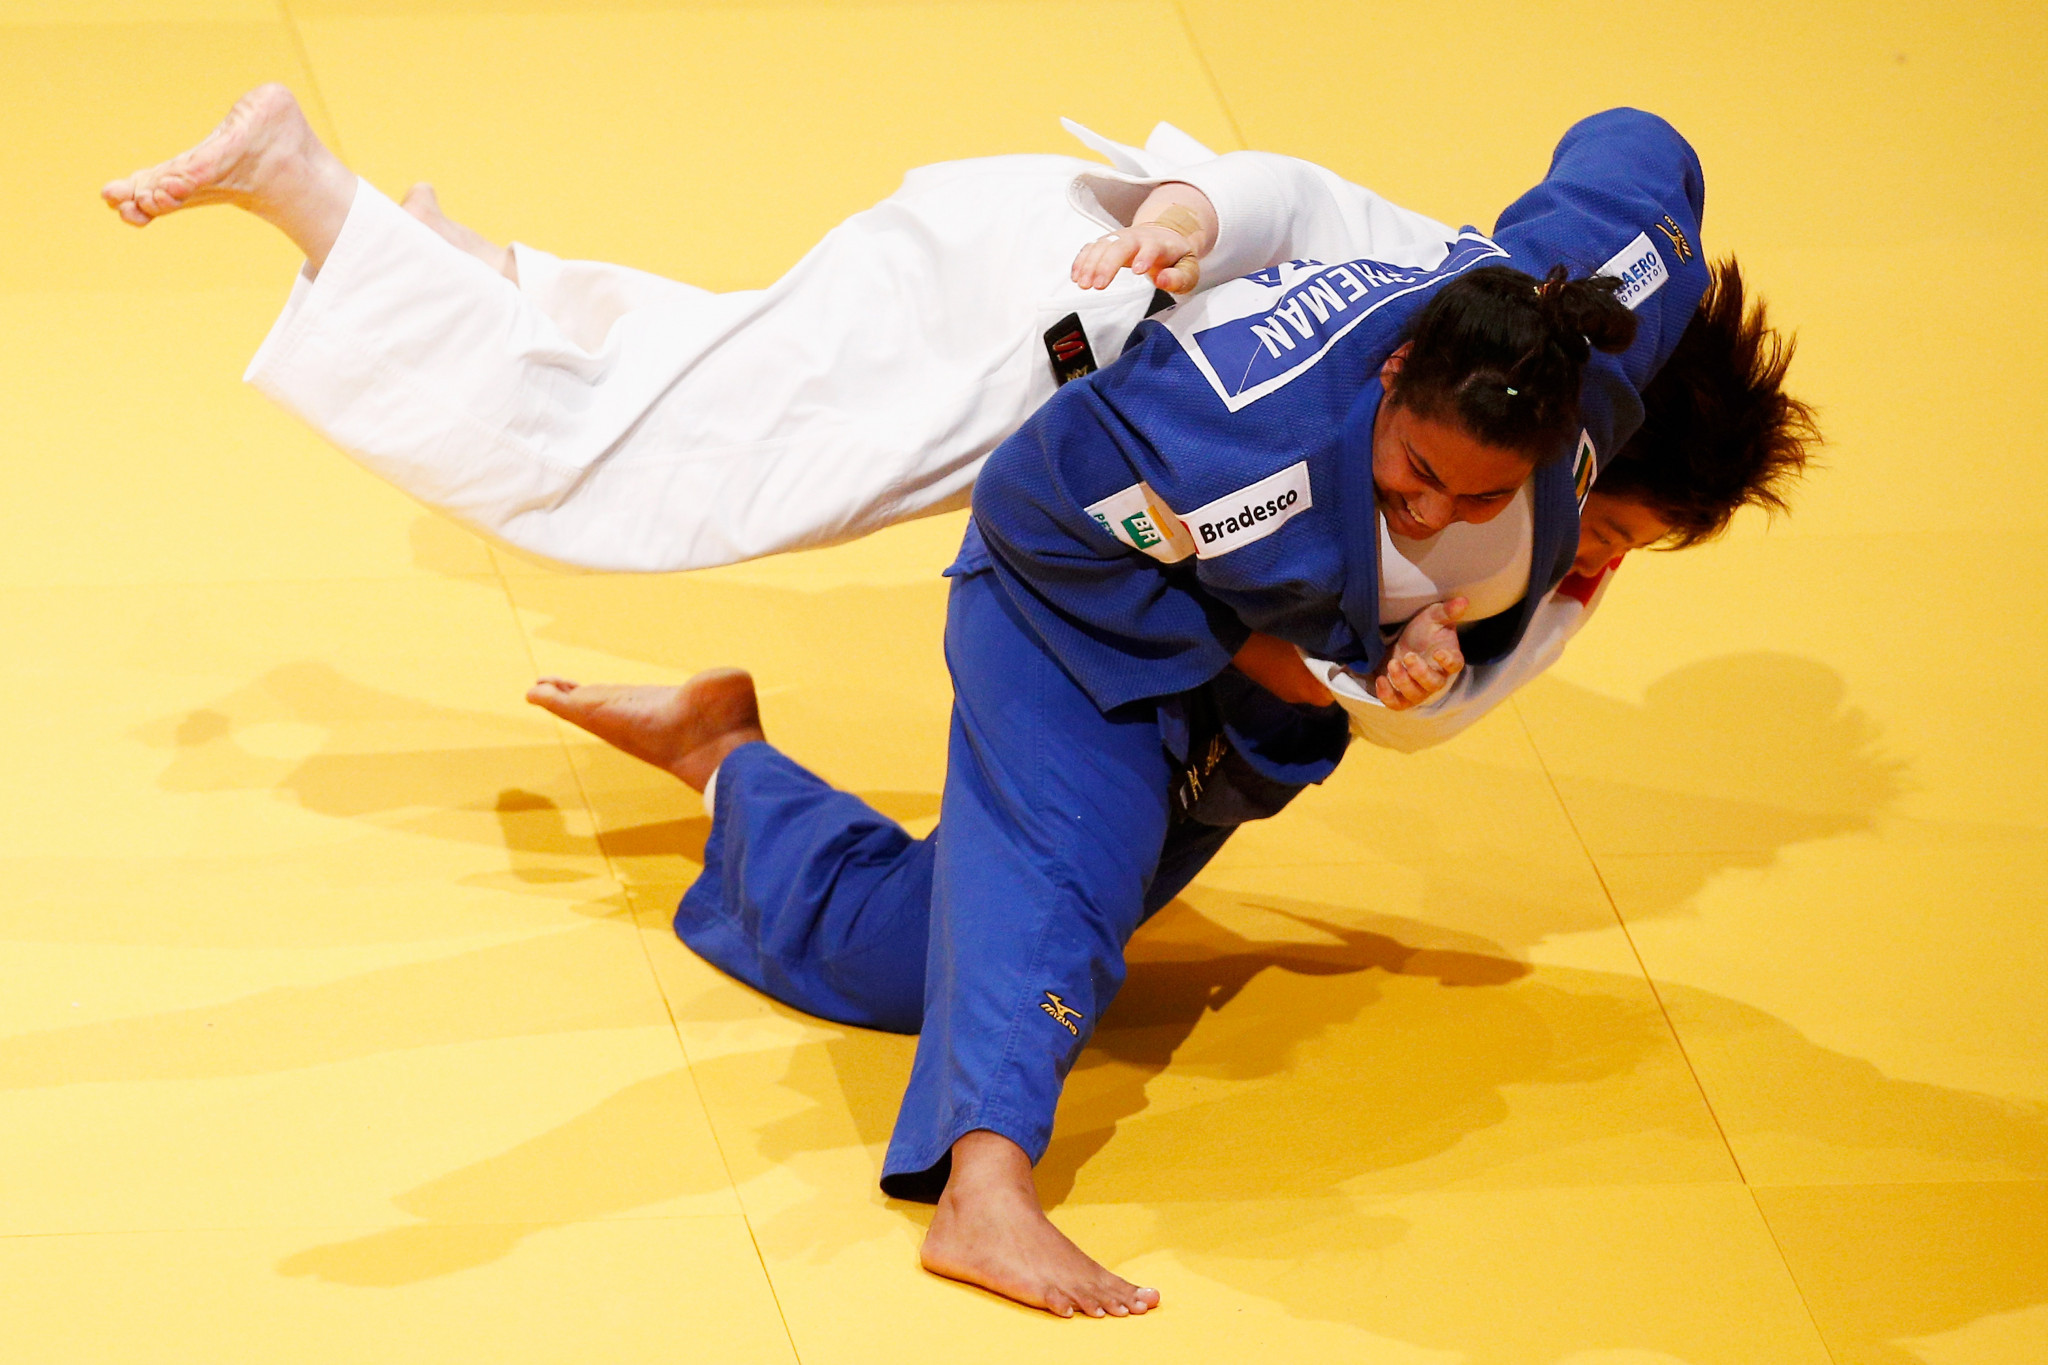 International Judo Federation launches art competition